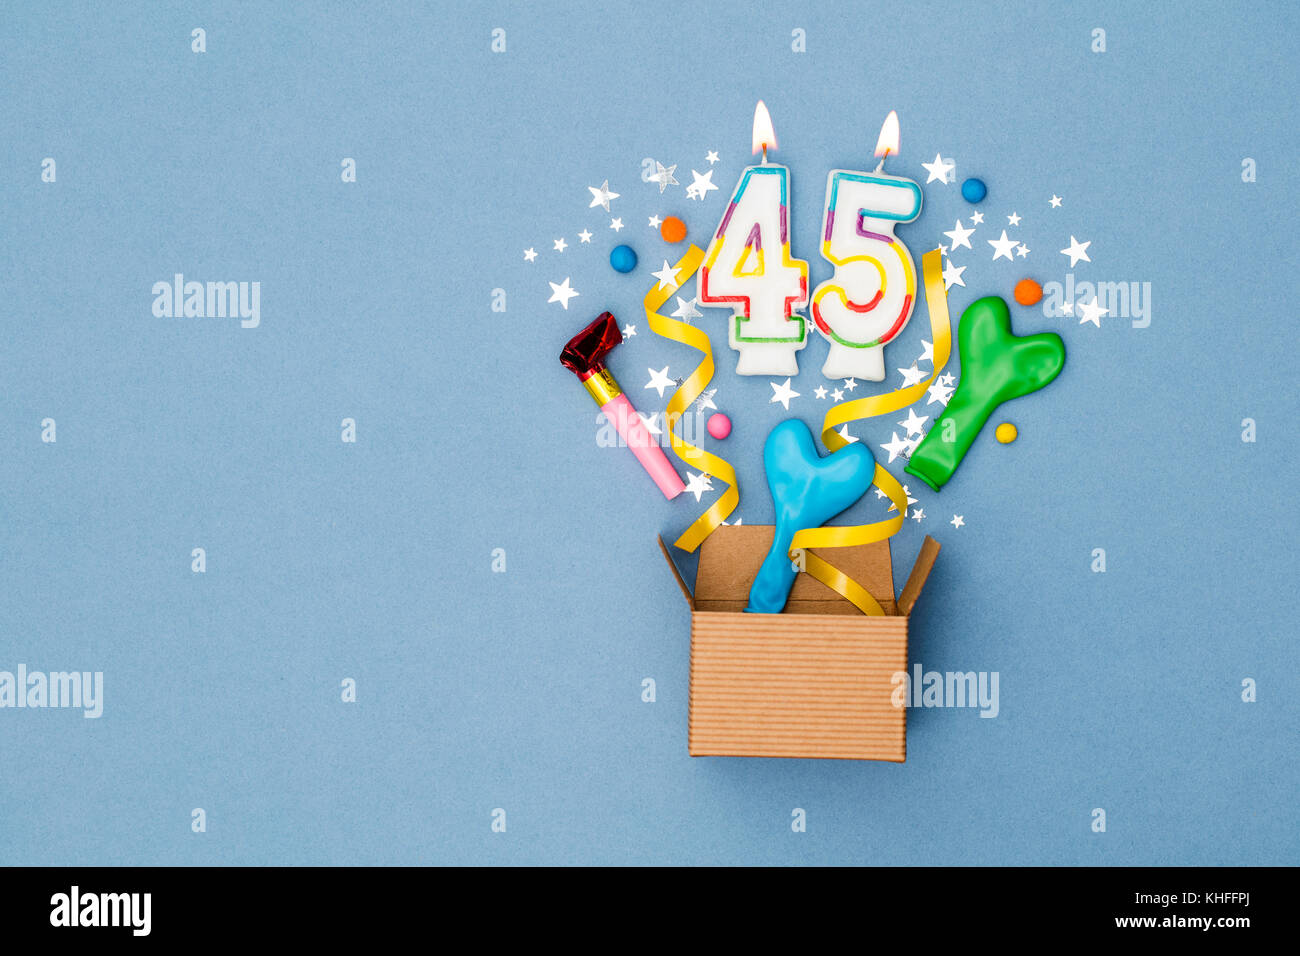 Number 45 Celebration Present Background Gift Box Exploding With Party Decorations